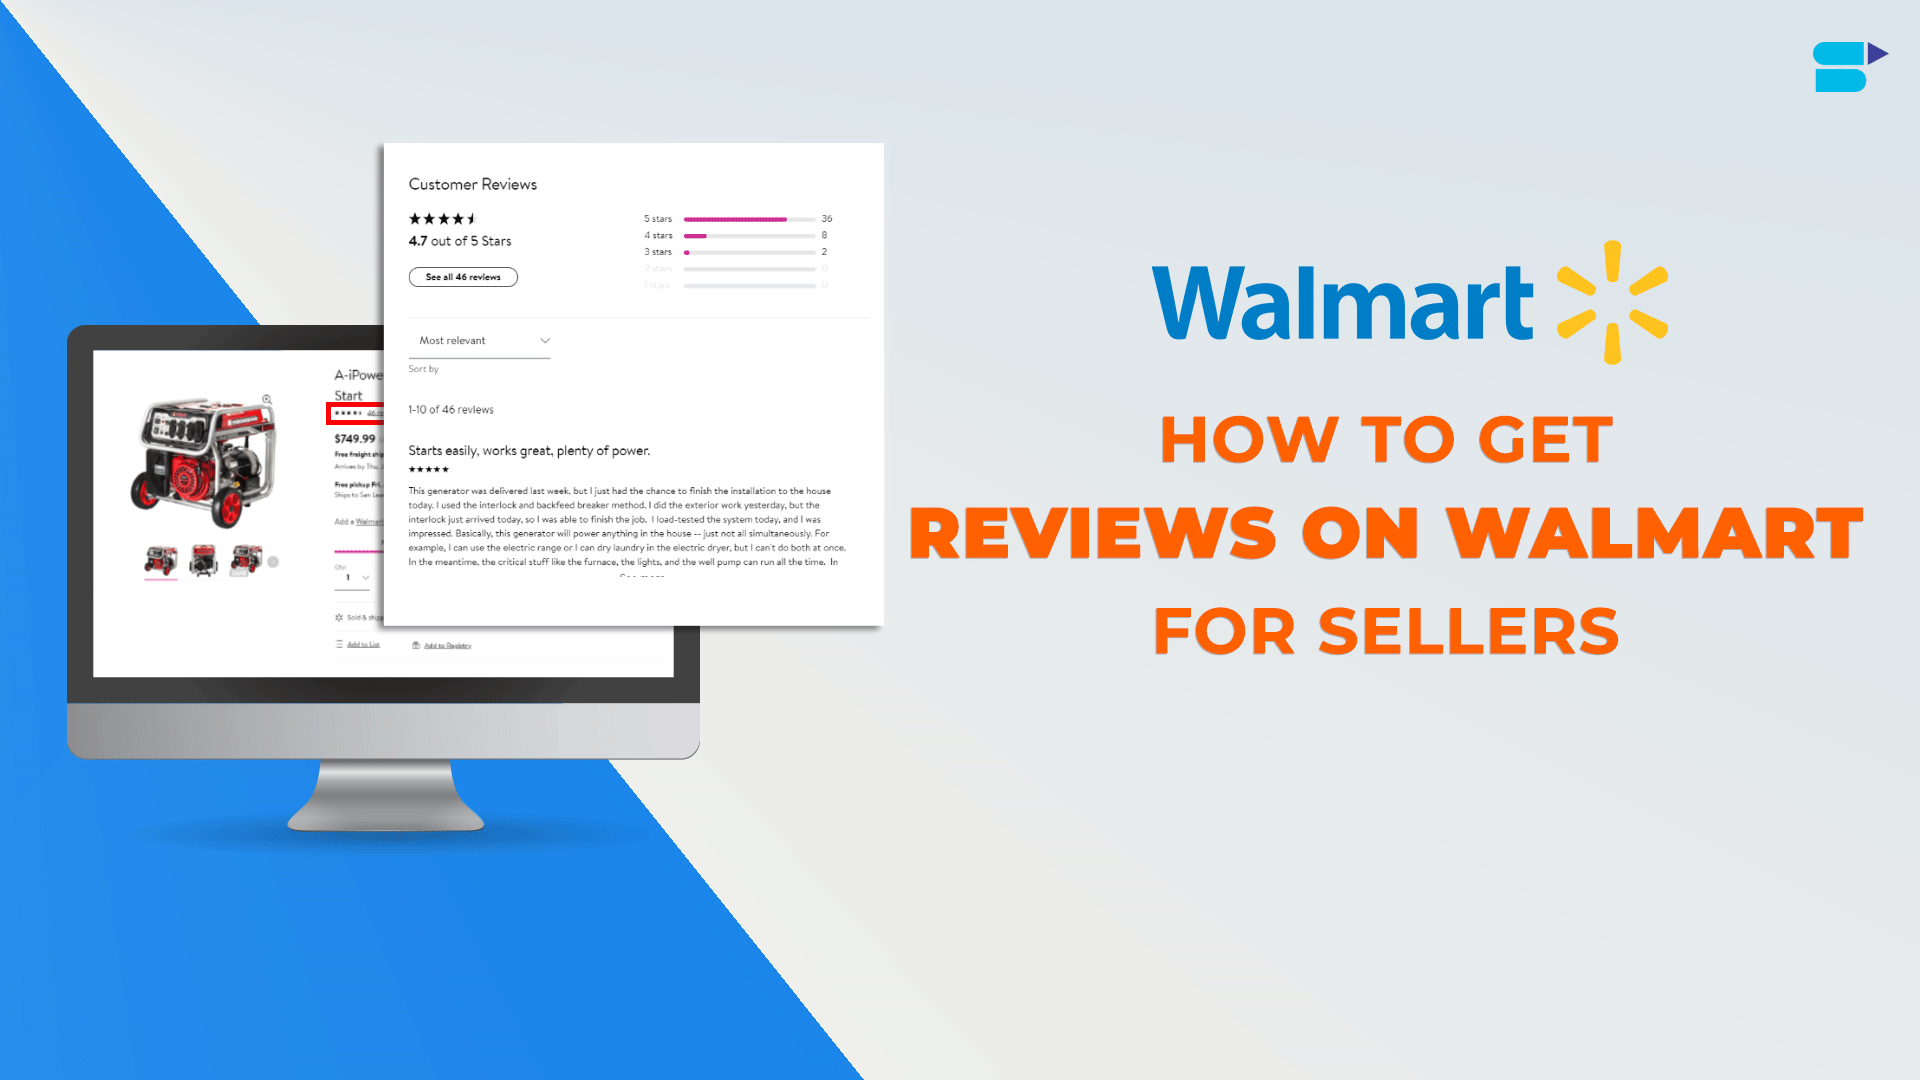 walmart reviews - get more customer reviews